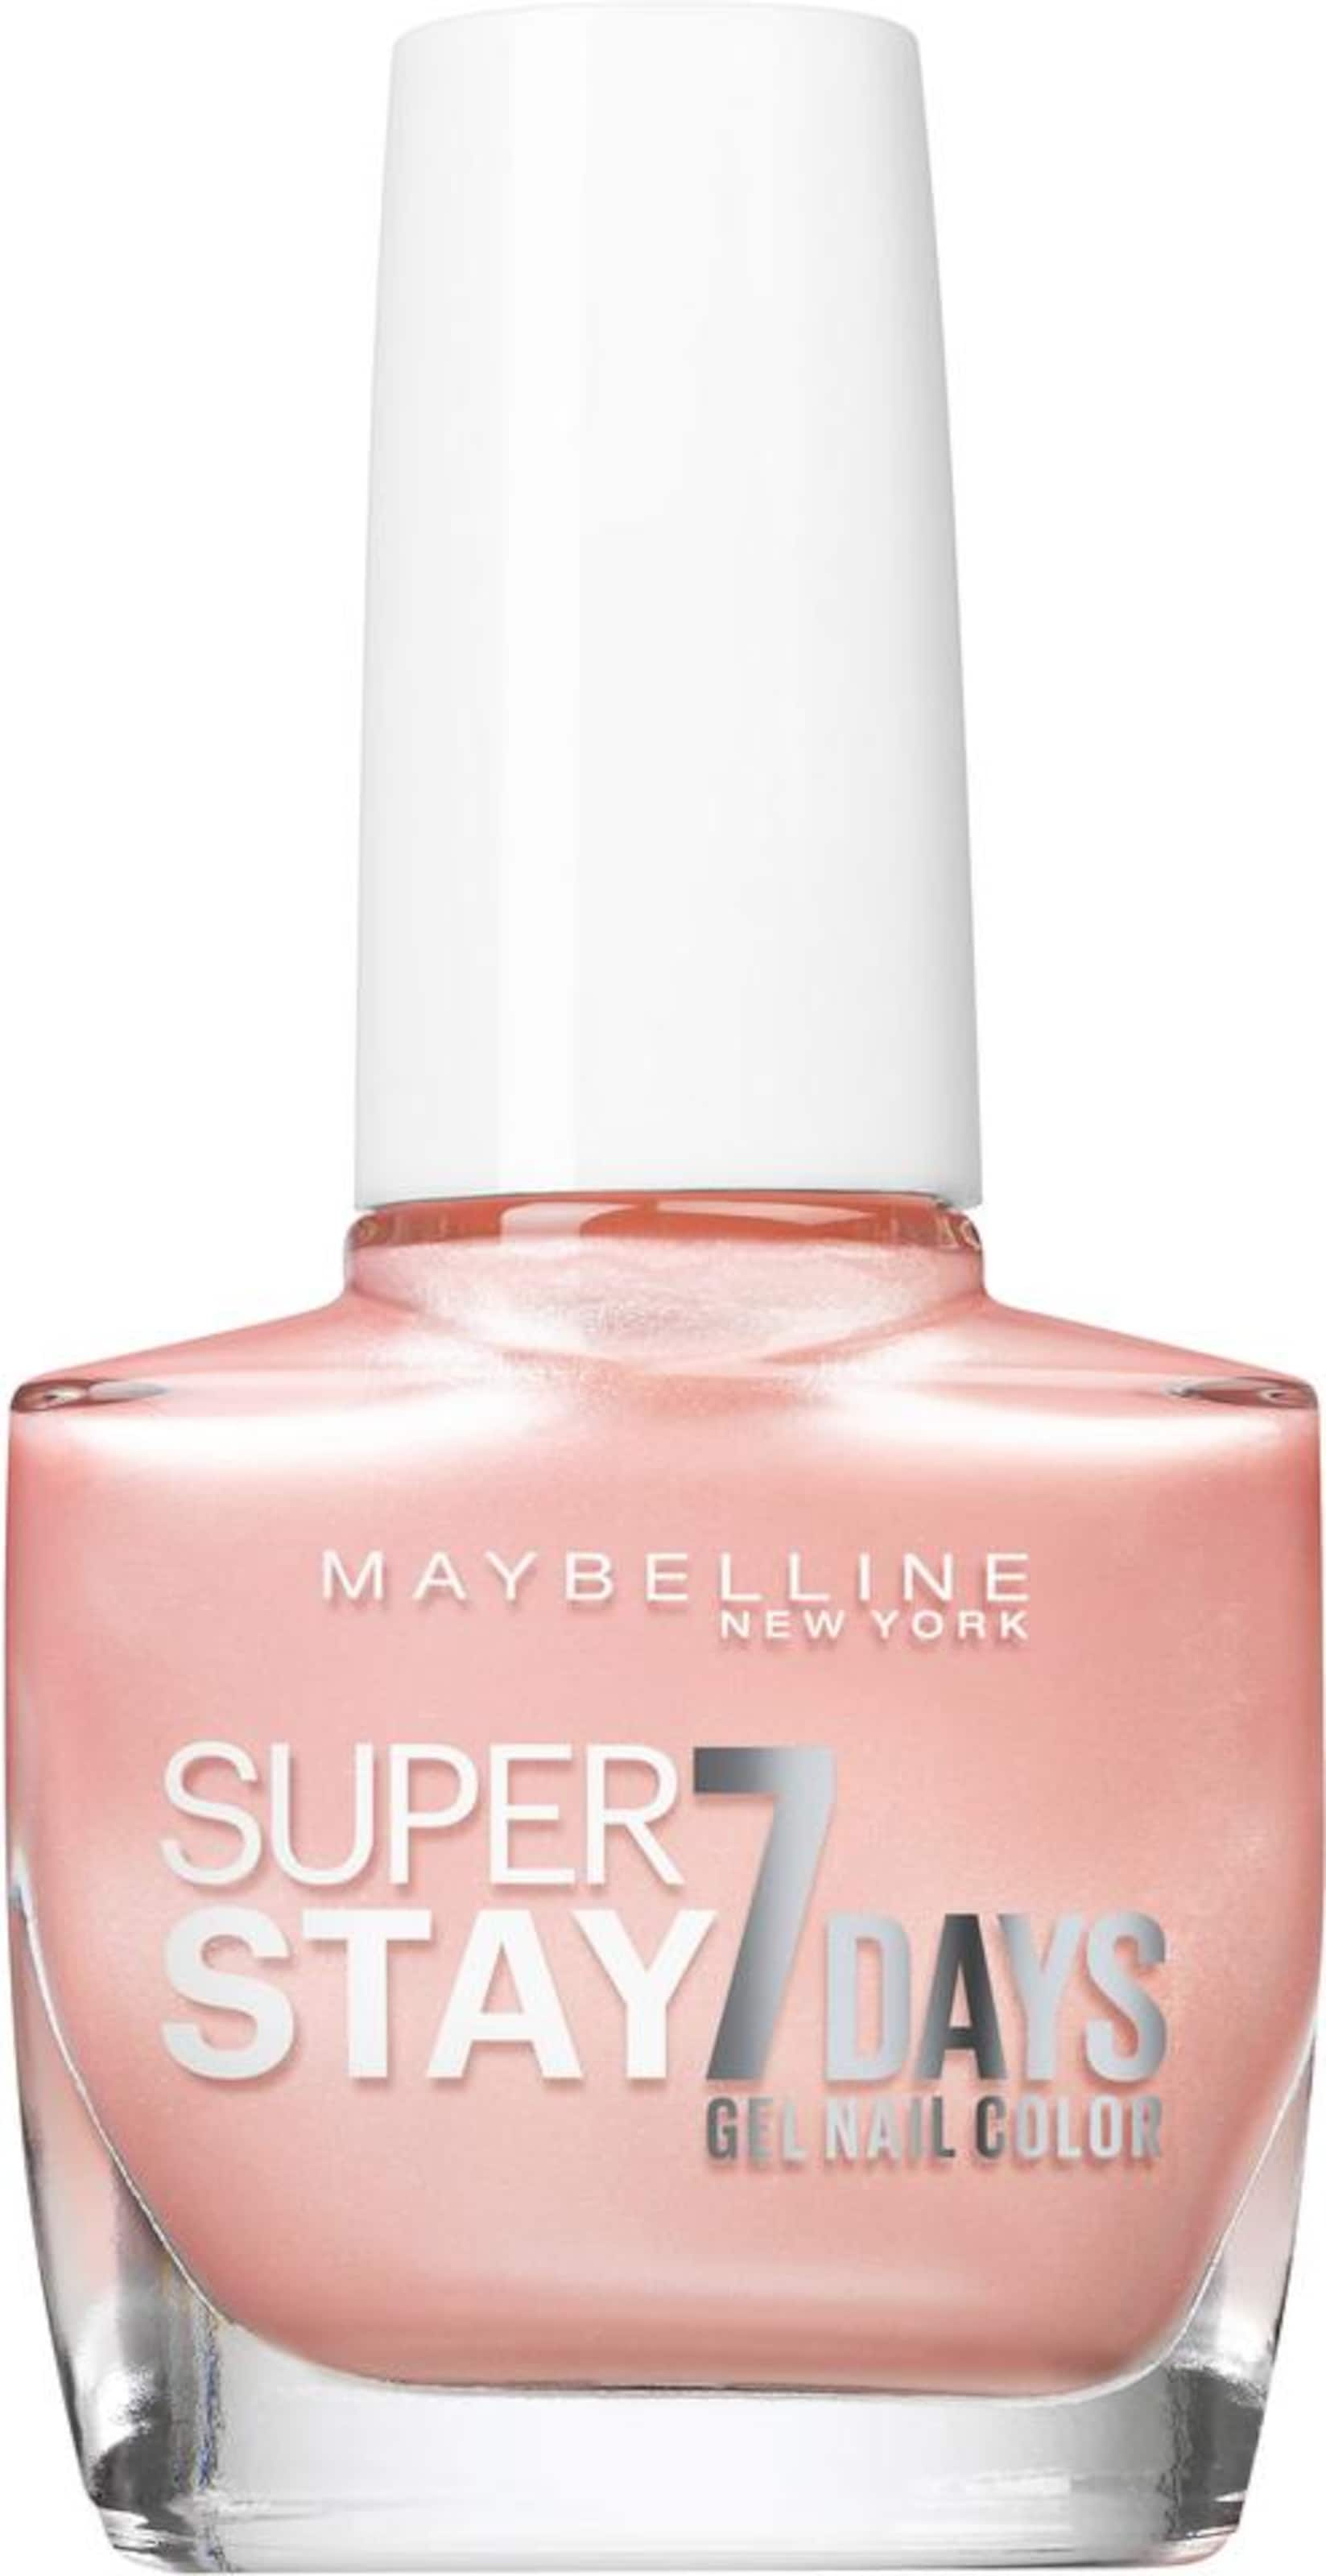 7 York In Nagellack Maybelline Altrosa 'nagellack Superstay New Days ' rdCBoxe